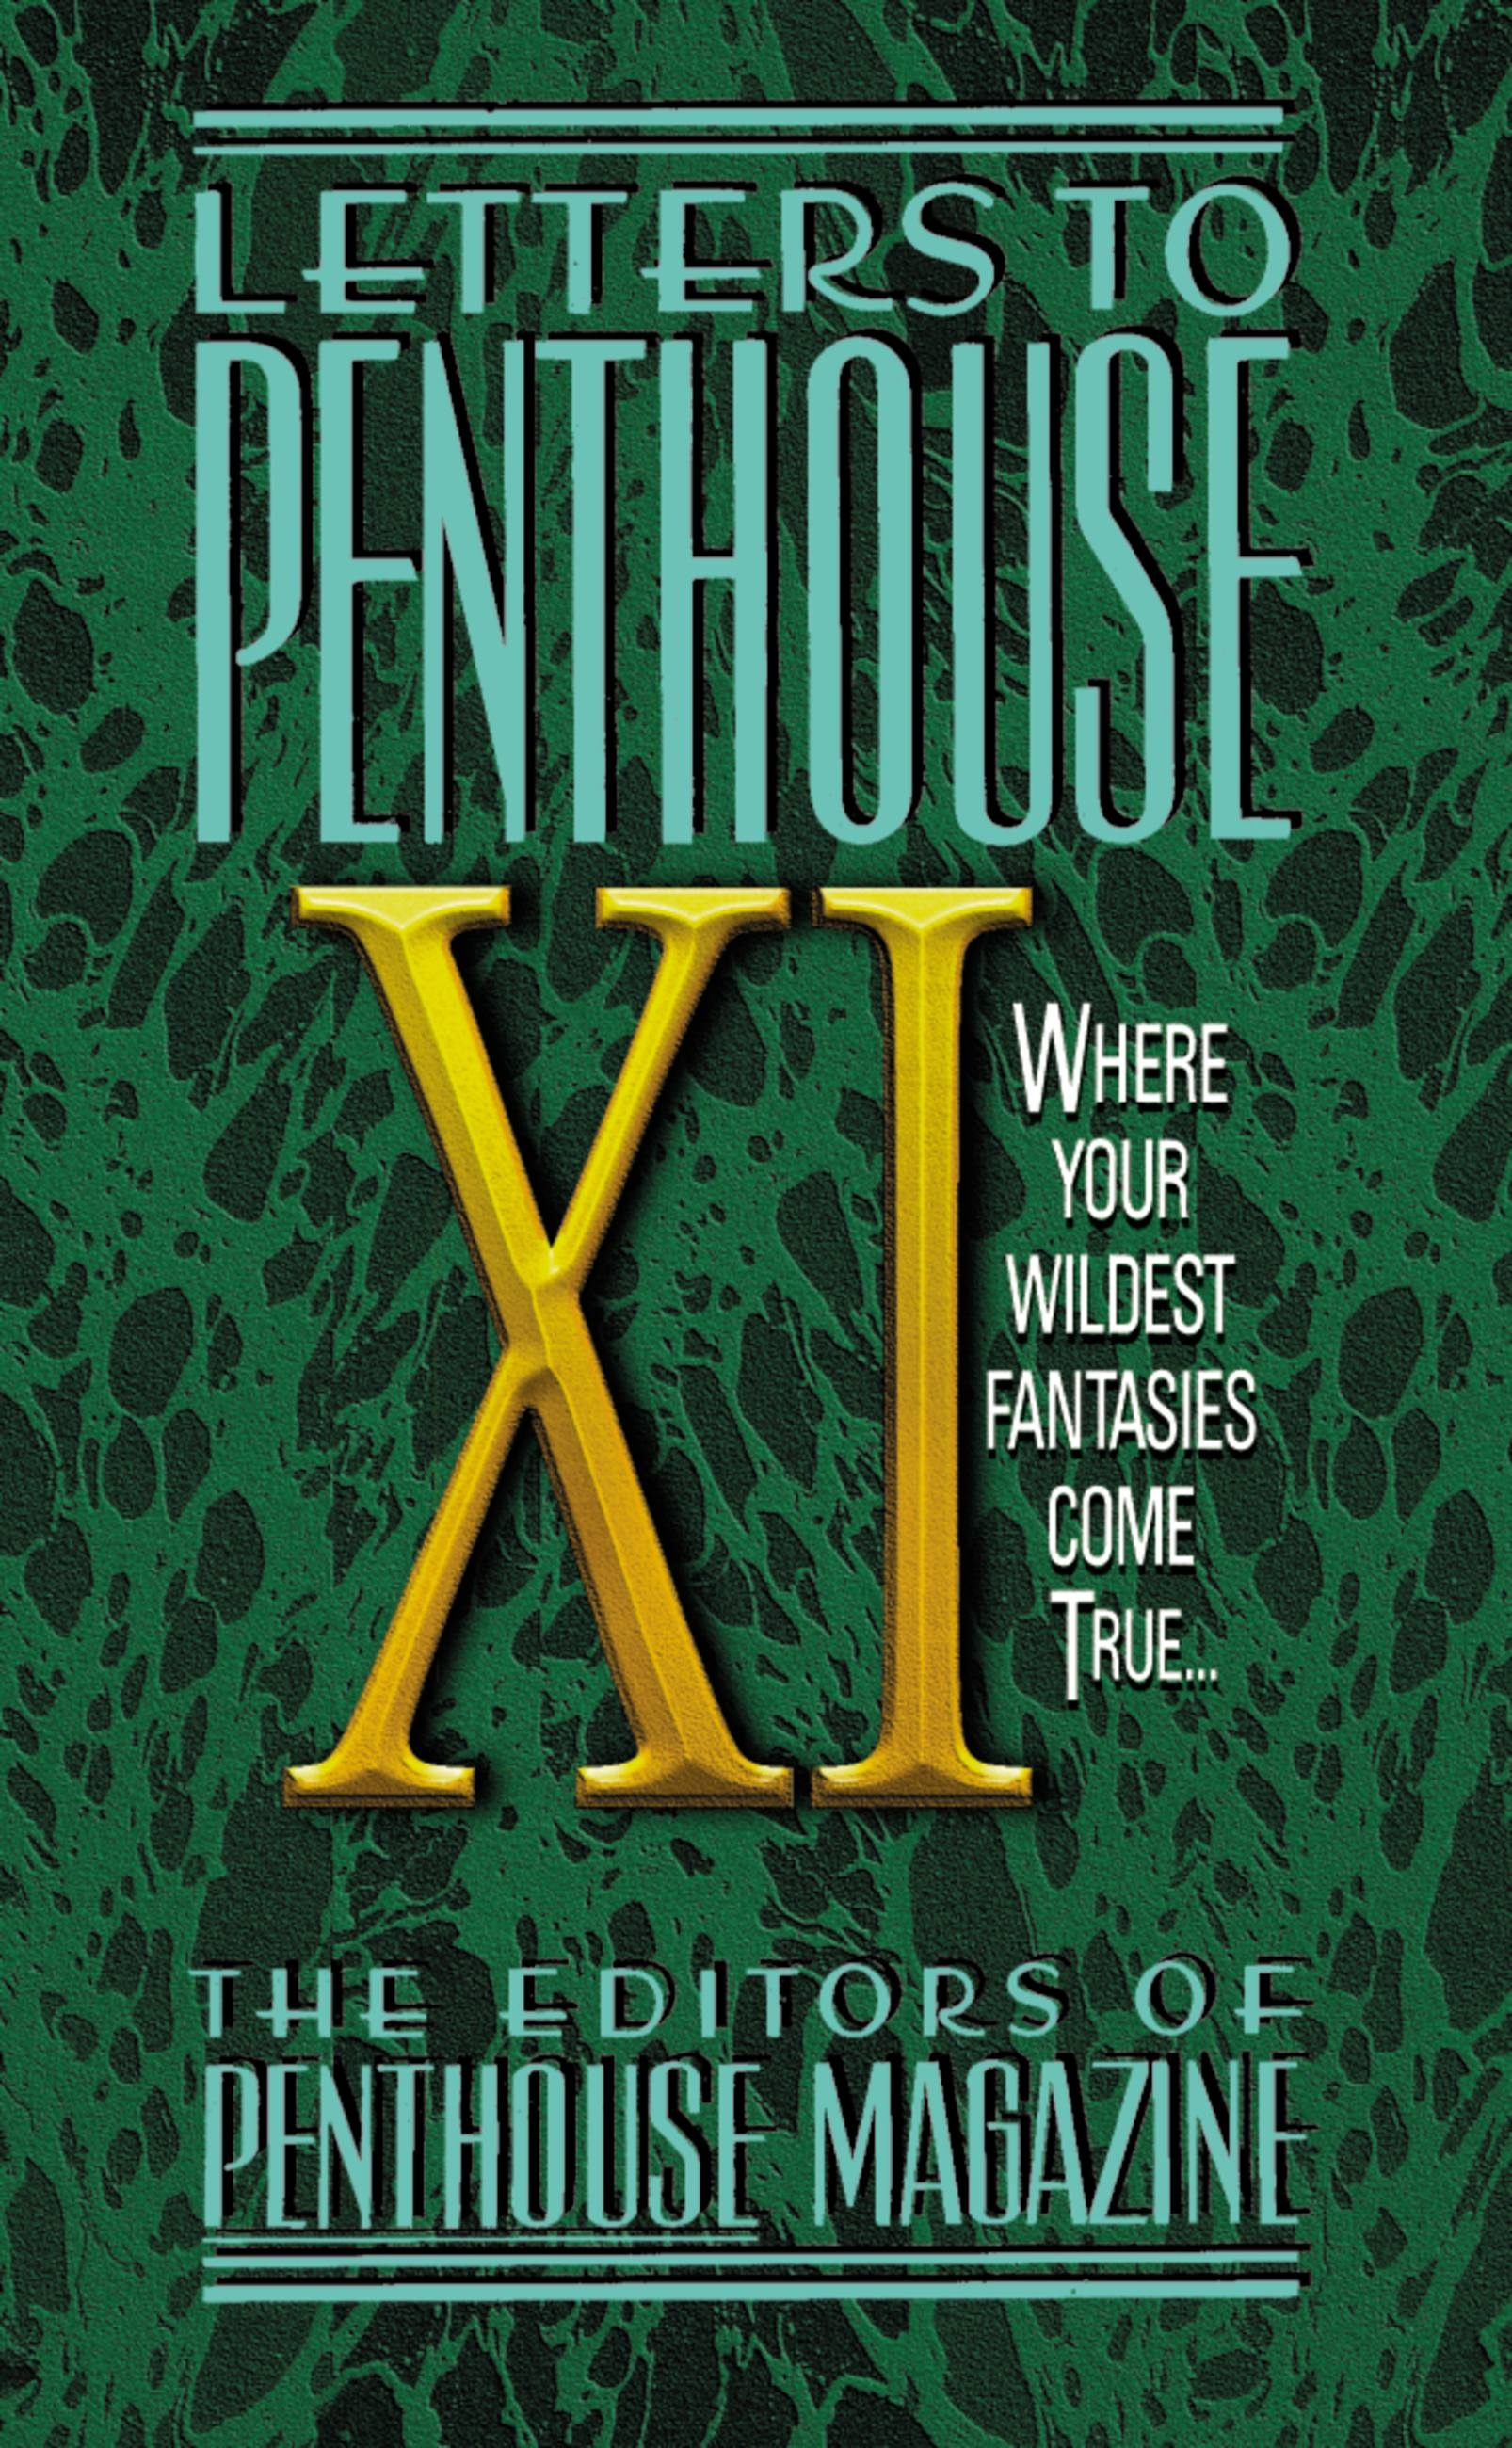 Letters to Penthouse XI